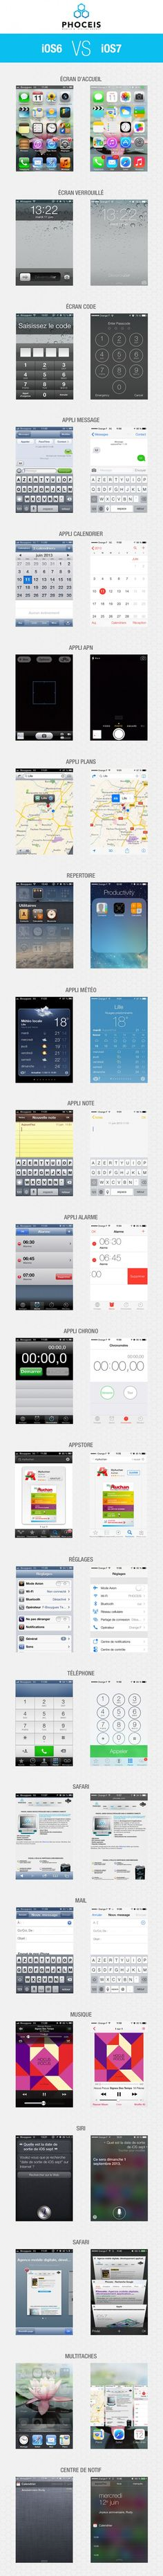 IOS 6 VS IOS 7. Not in English, but still get the idea..doesn't look too bad